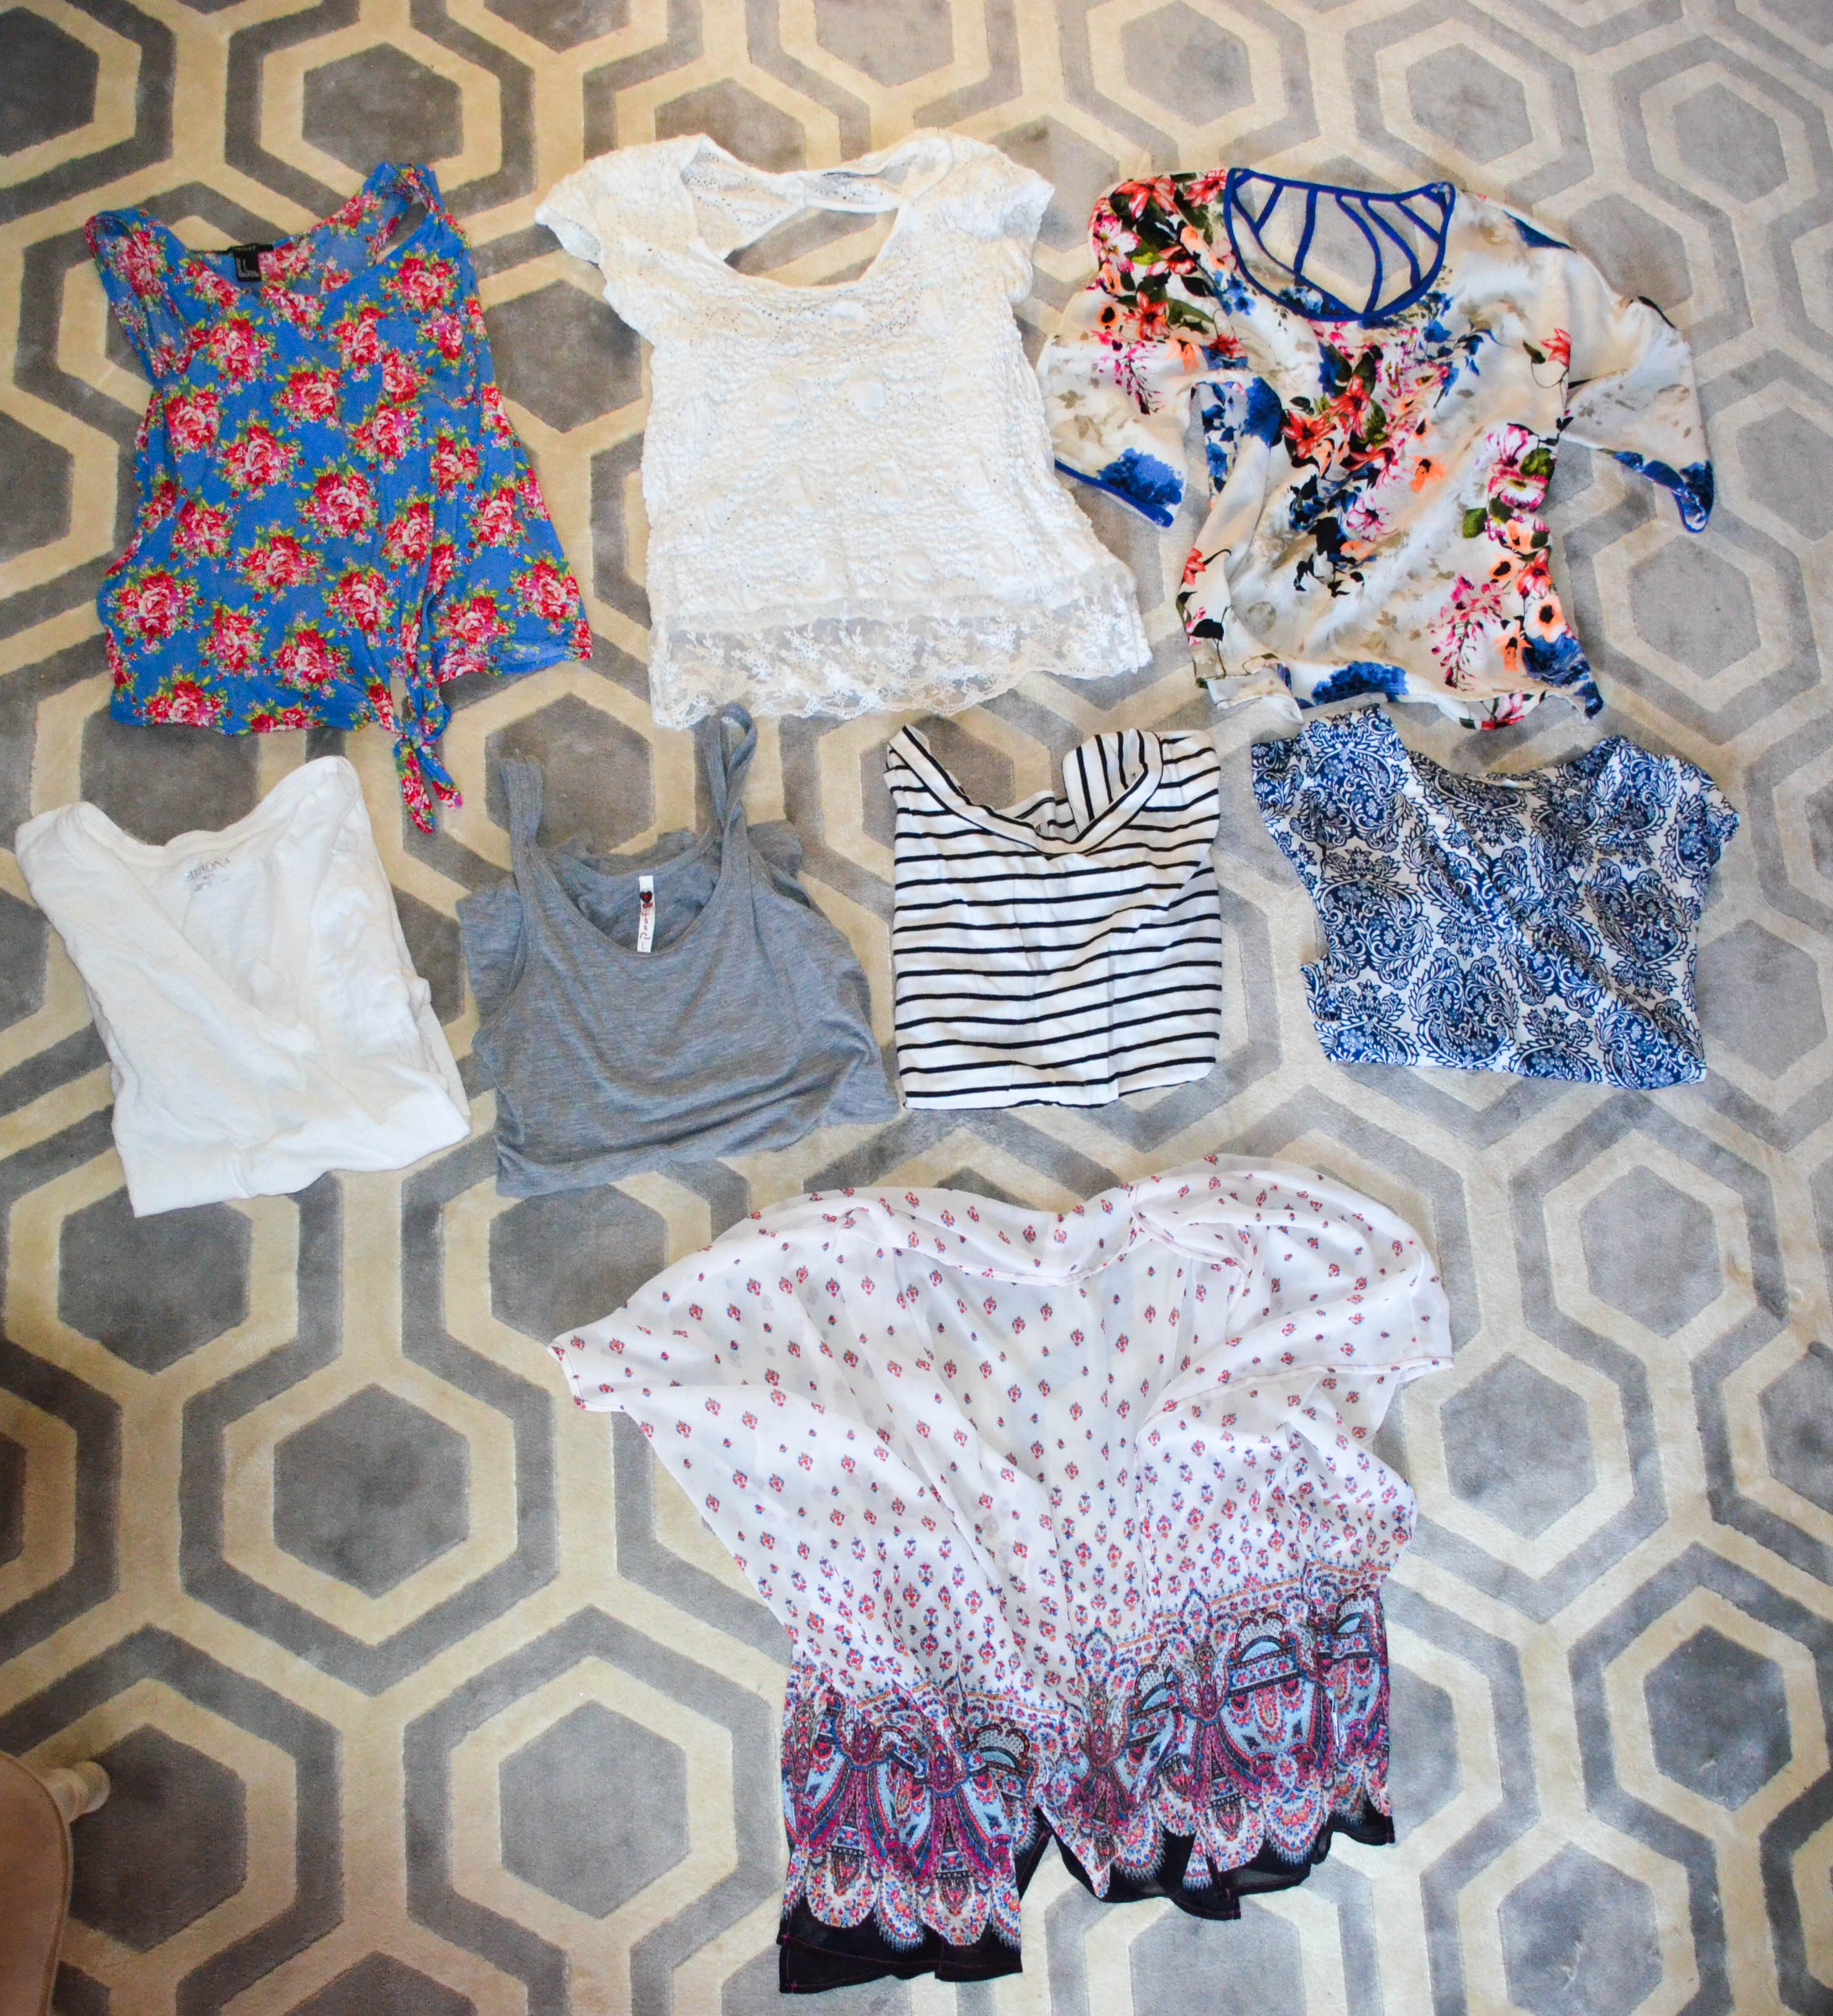 What I Packed: Tops